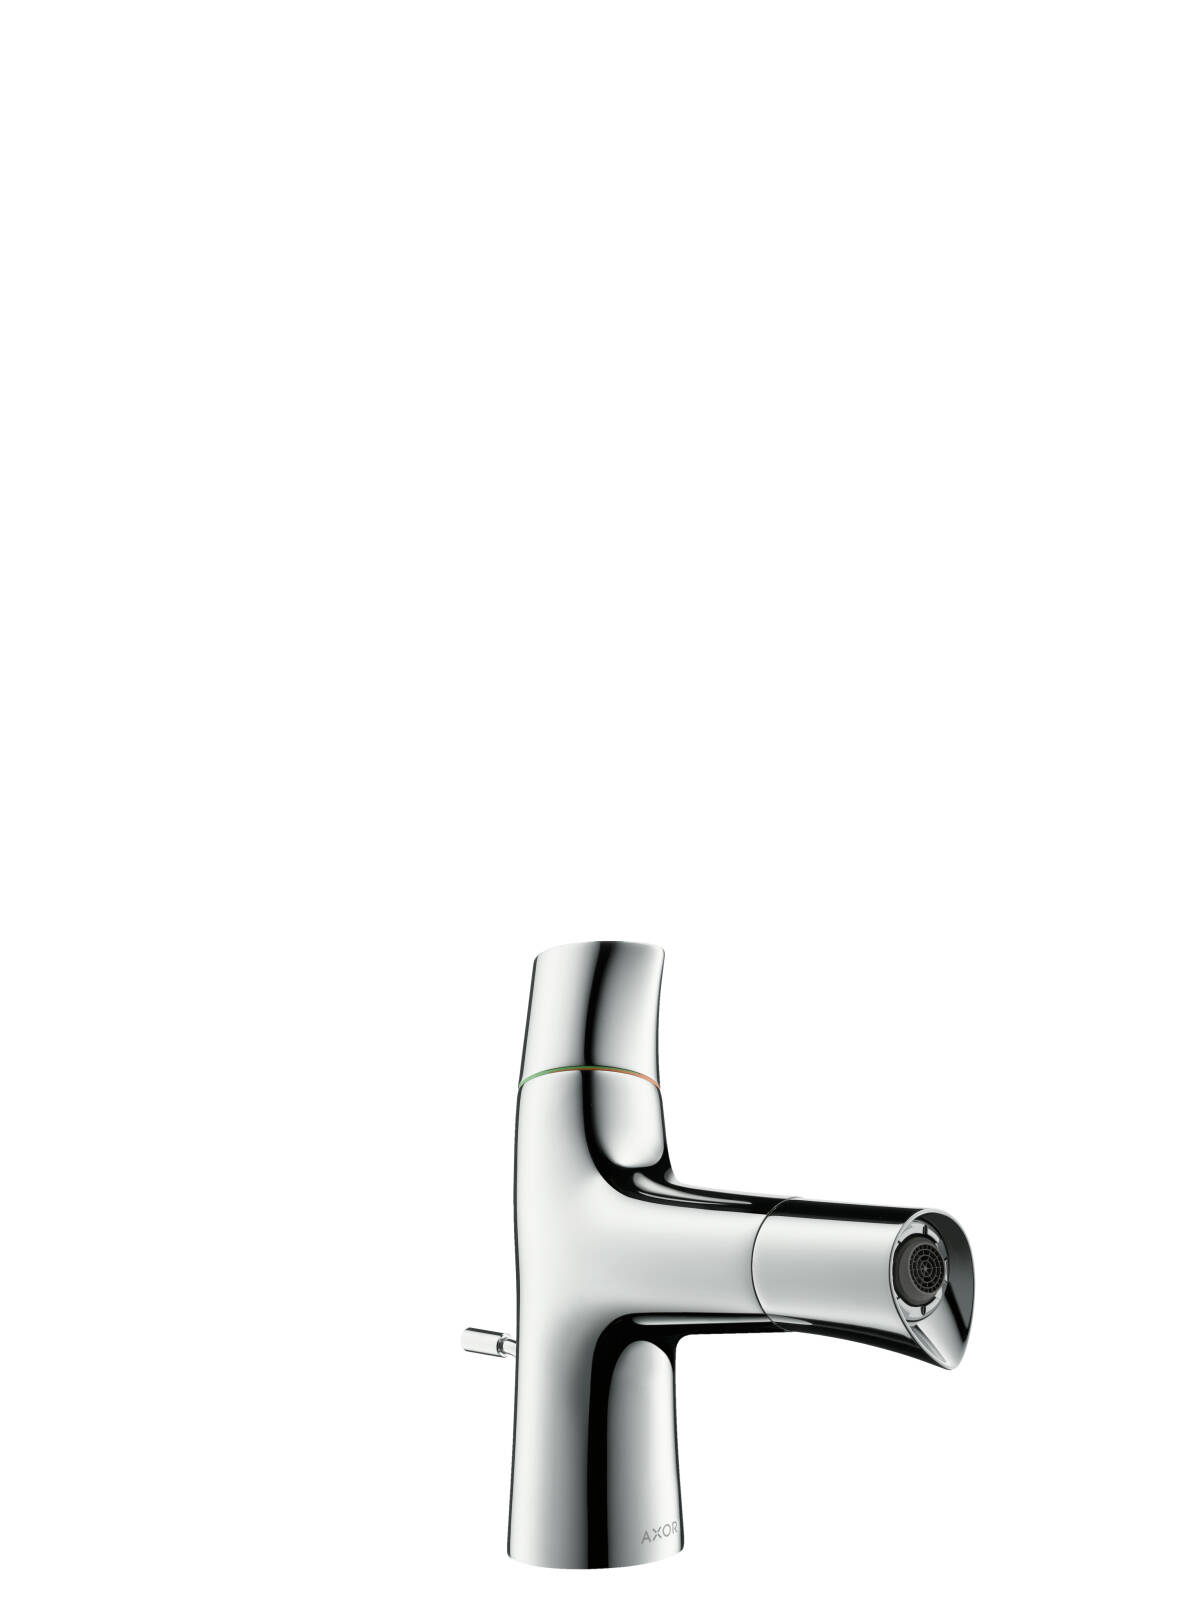 2-handle bidet mixer with pop-up waste set, Stainless Steel Optic, 12210800